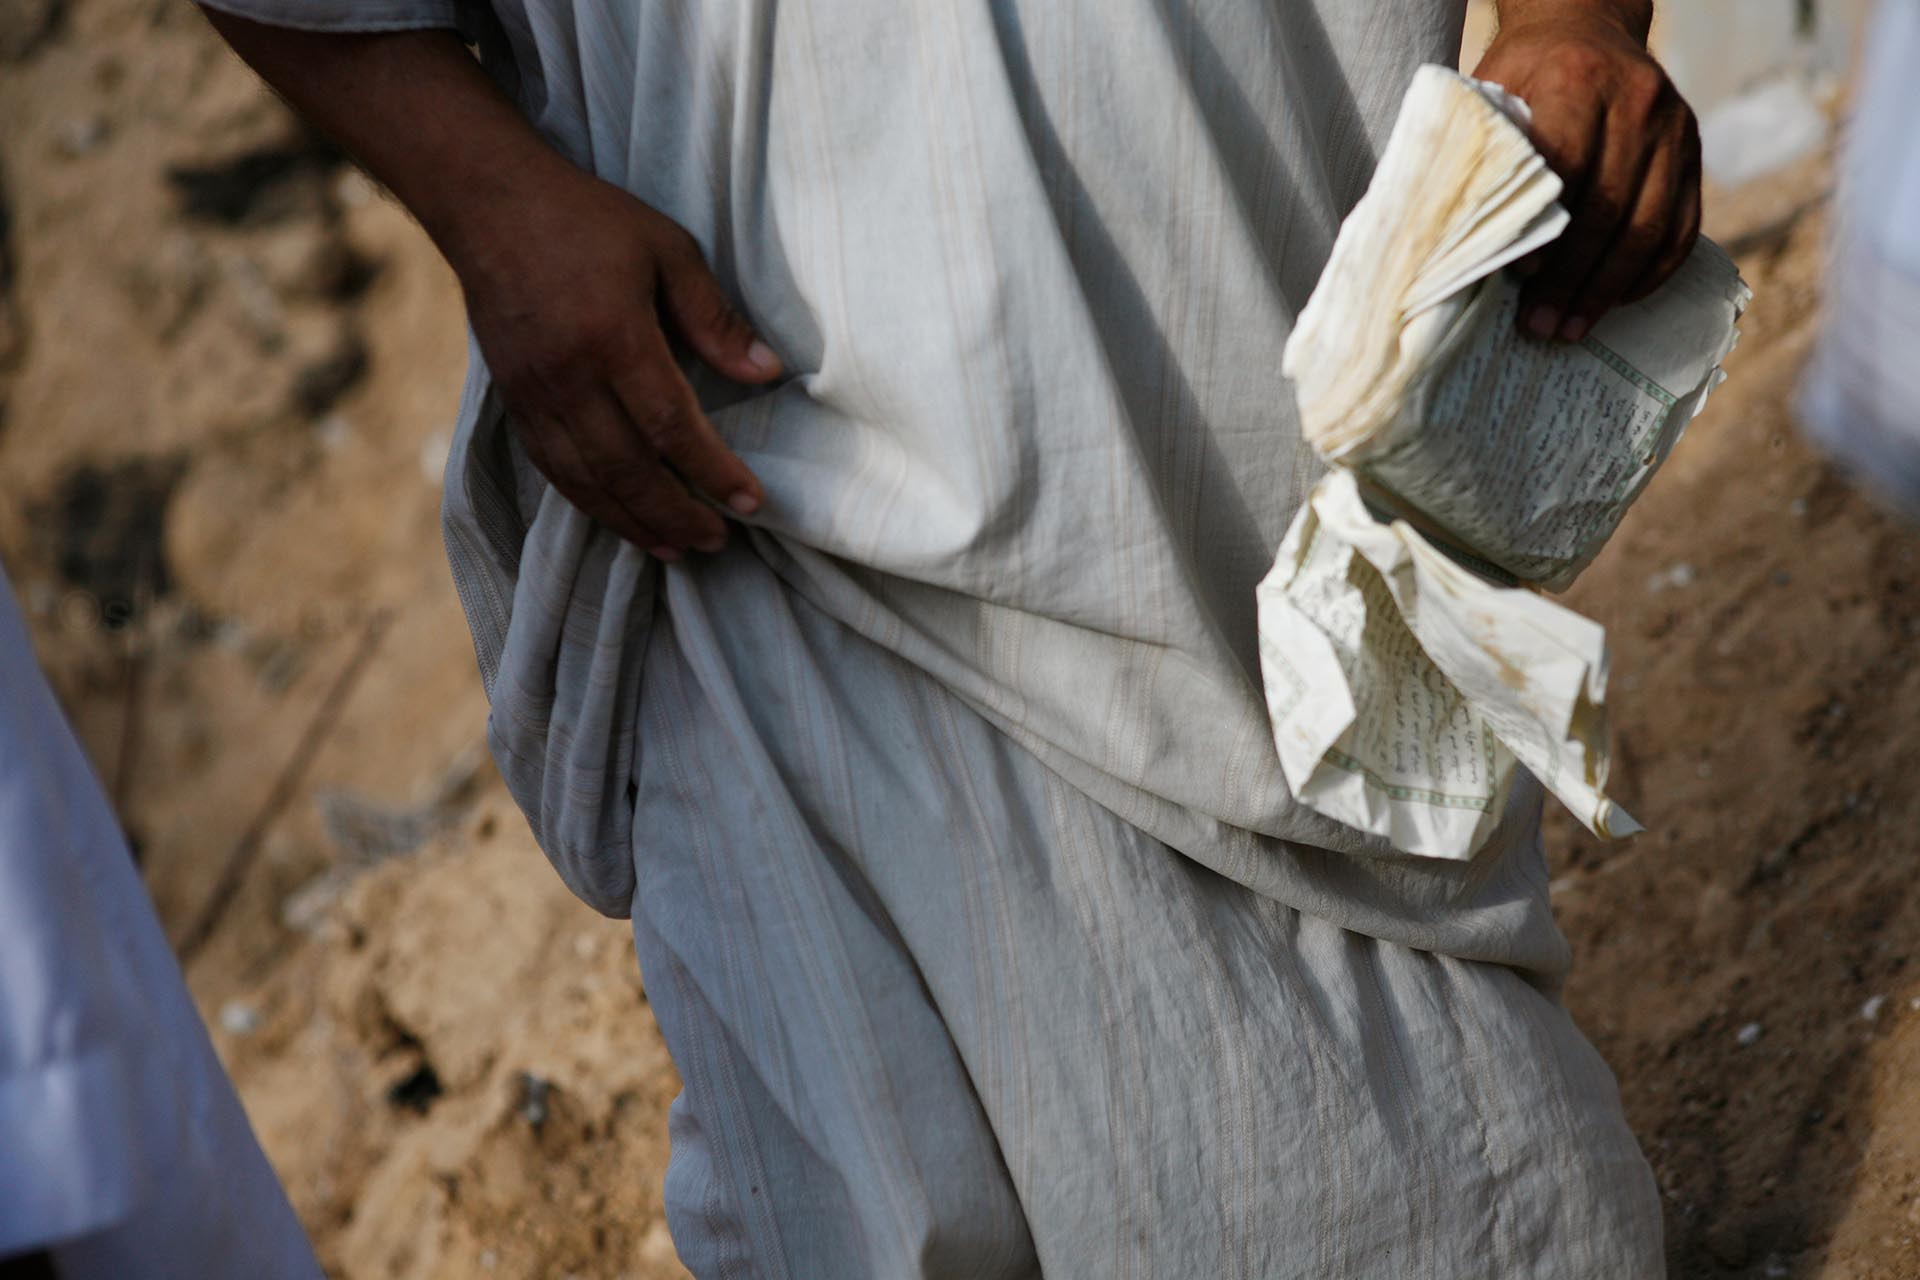 A man picks up pieces of the Holy Koran from the rubble. Abasan Al Kabira, July 2014